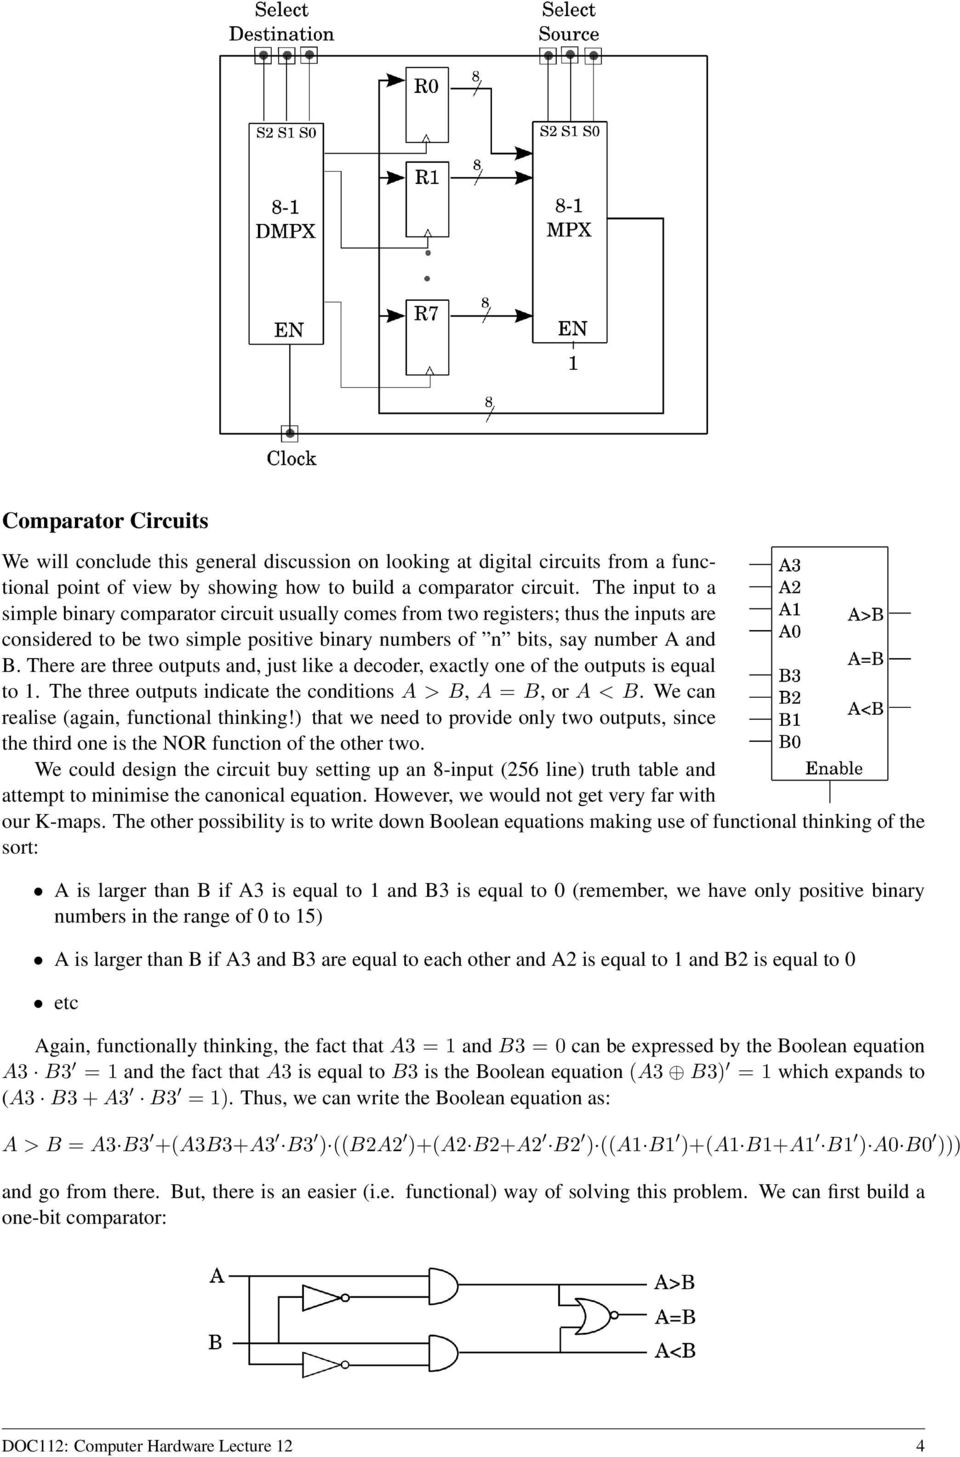 Lecture 12 More On Registers Multiplexers Decoders Comparators Comparator Circuits Examples Tutorial There Are Three Outputs And Just Like A Decoder Exactly One Of The